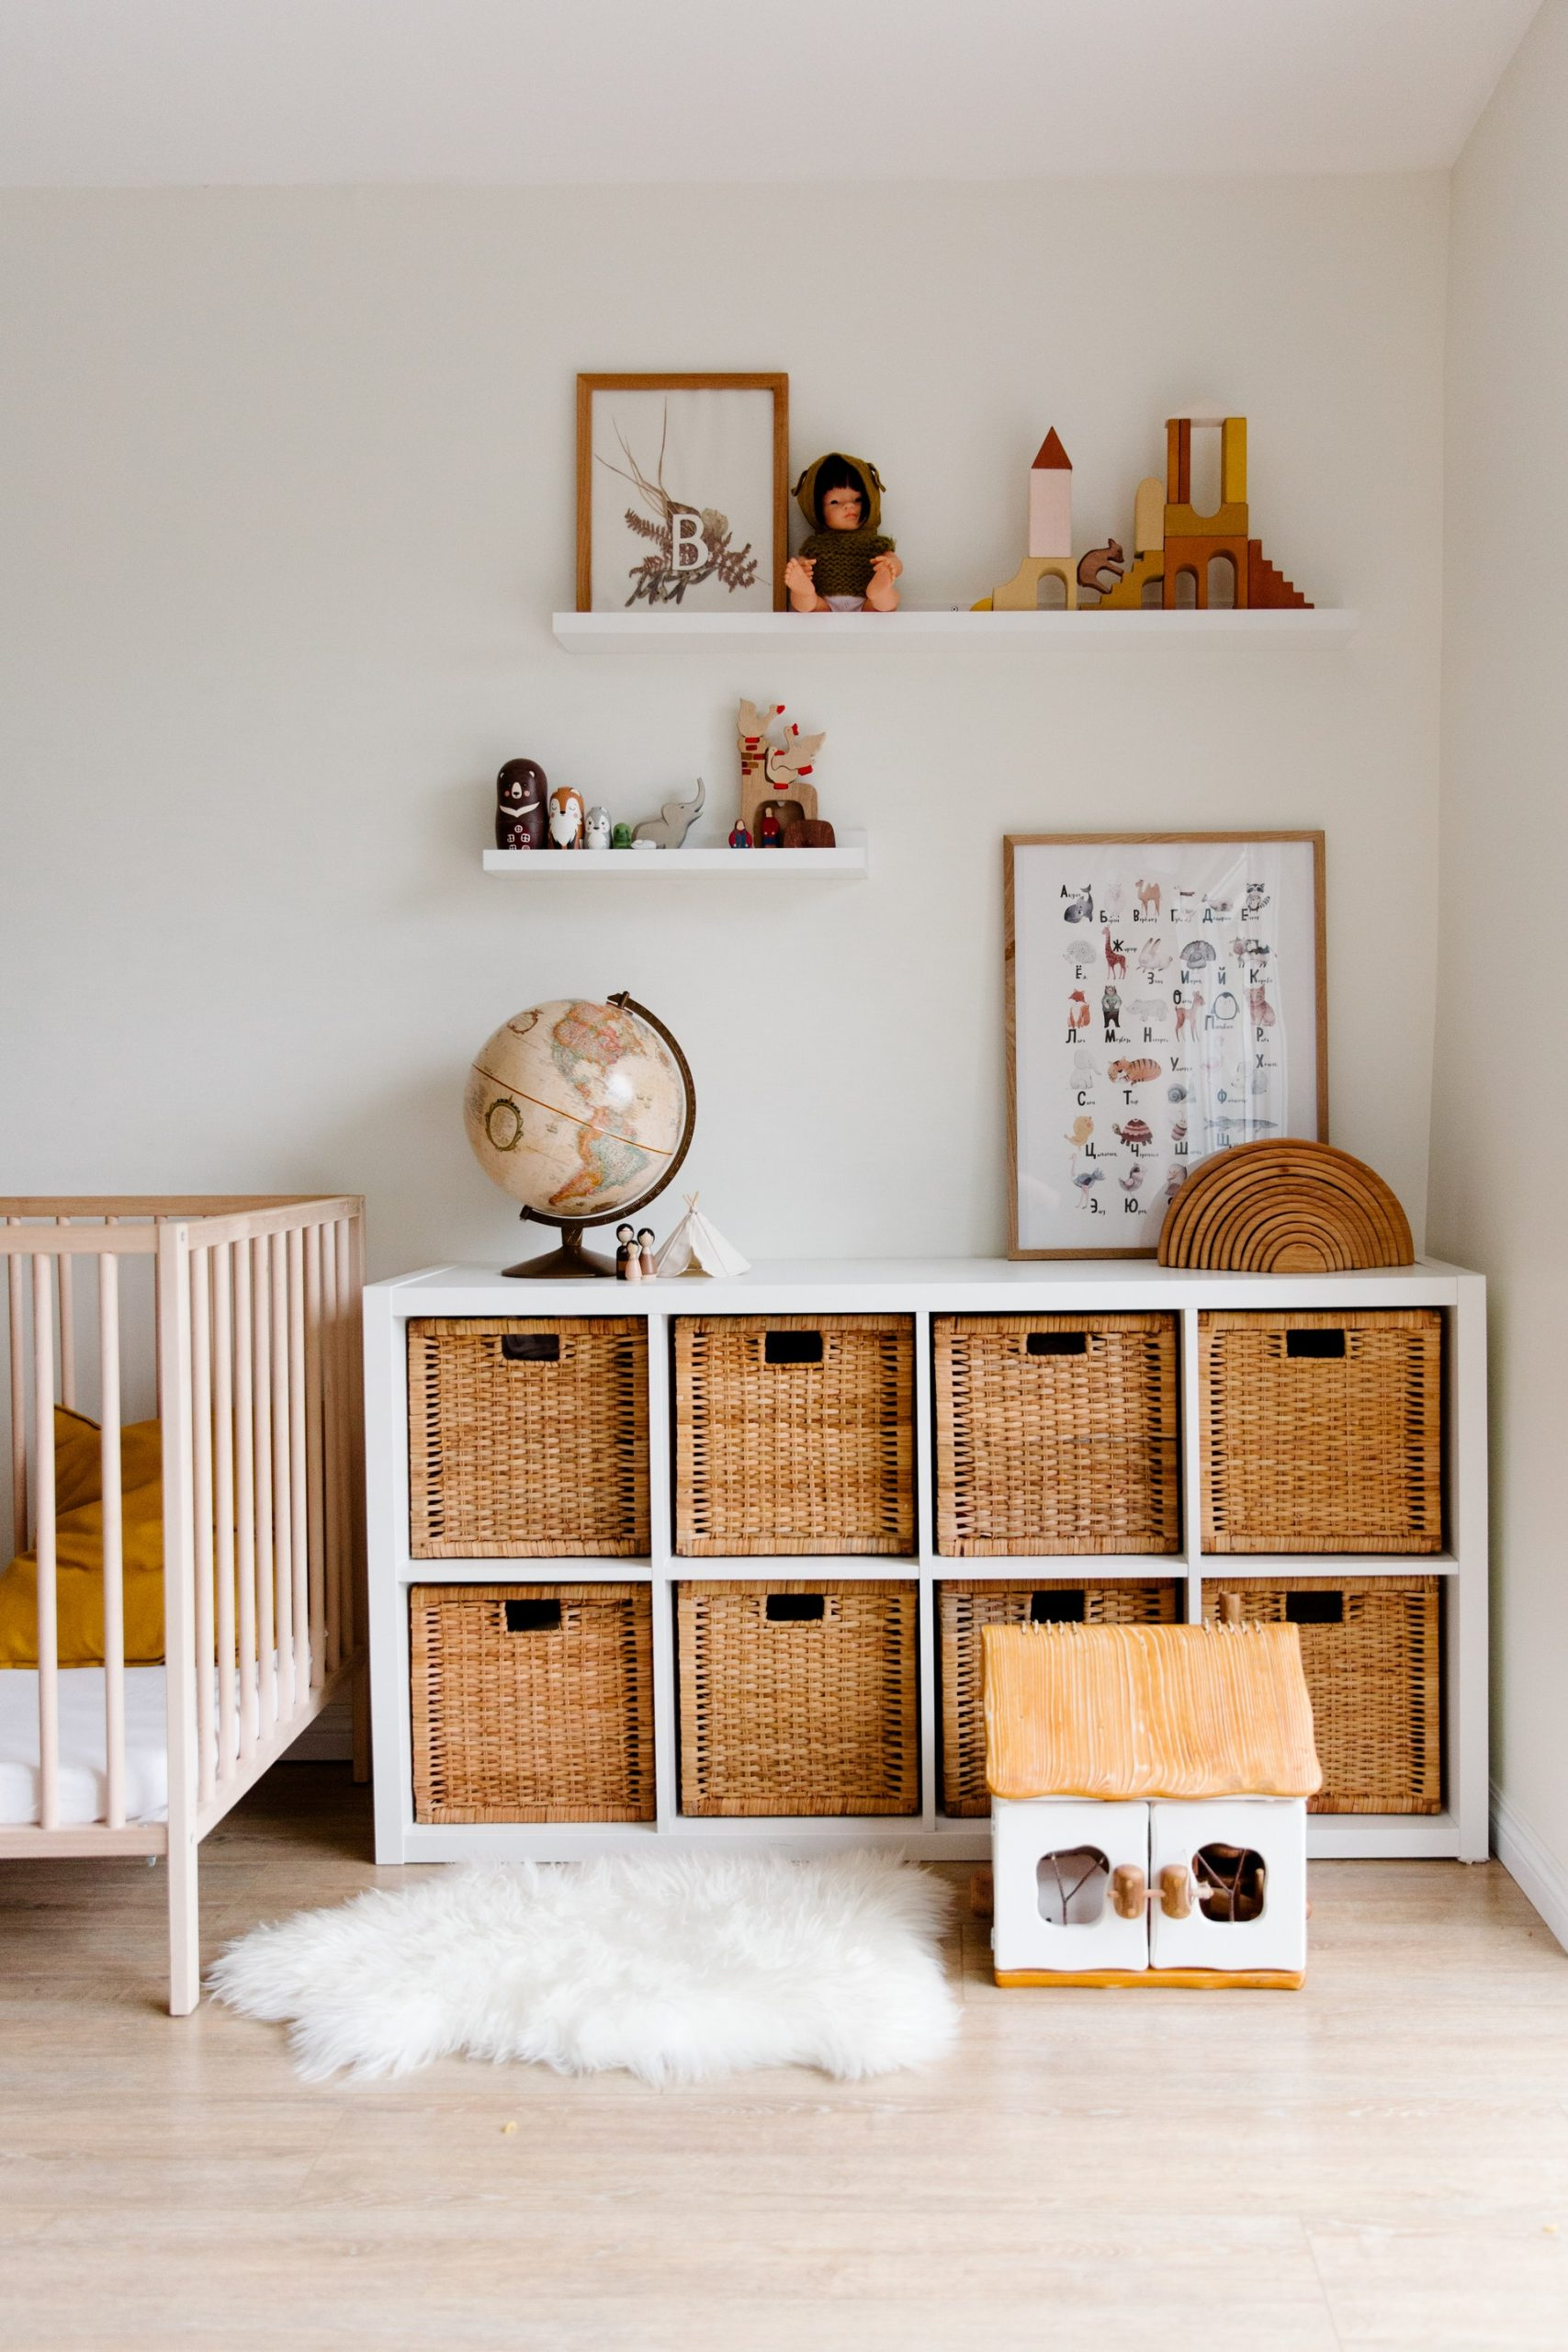 Kids bedroom and nursery organization and storage